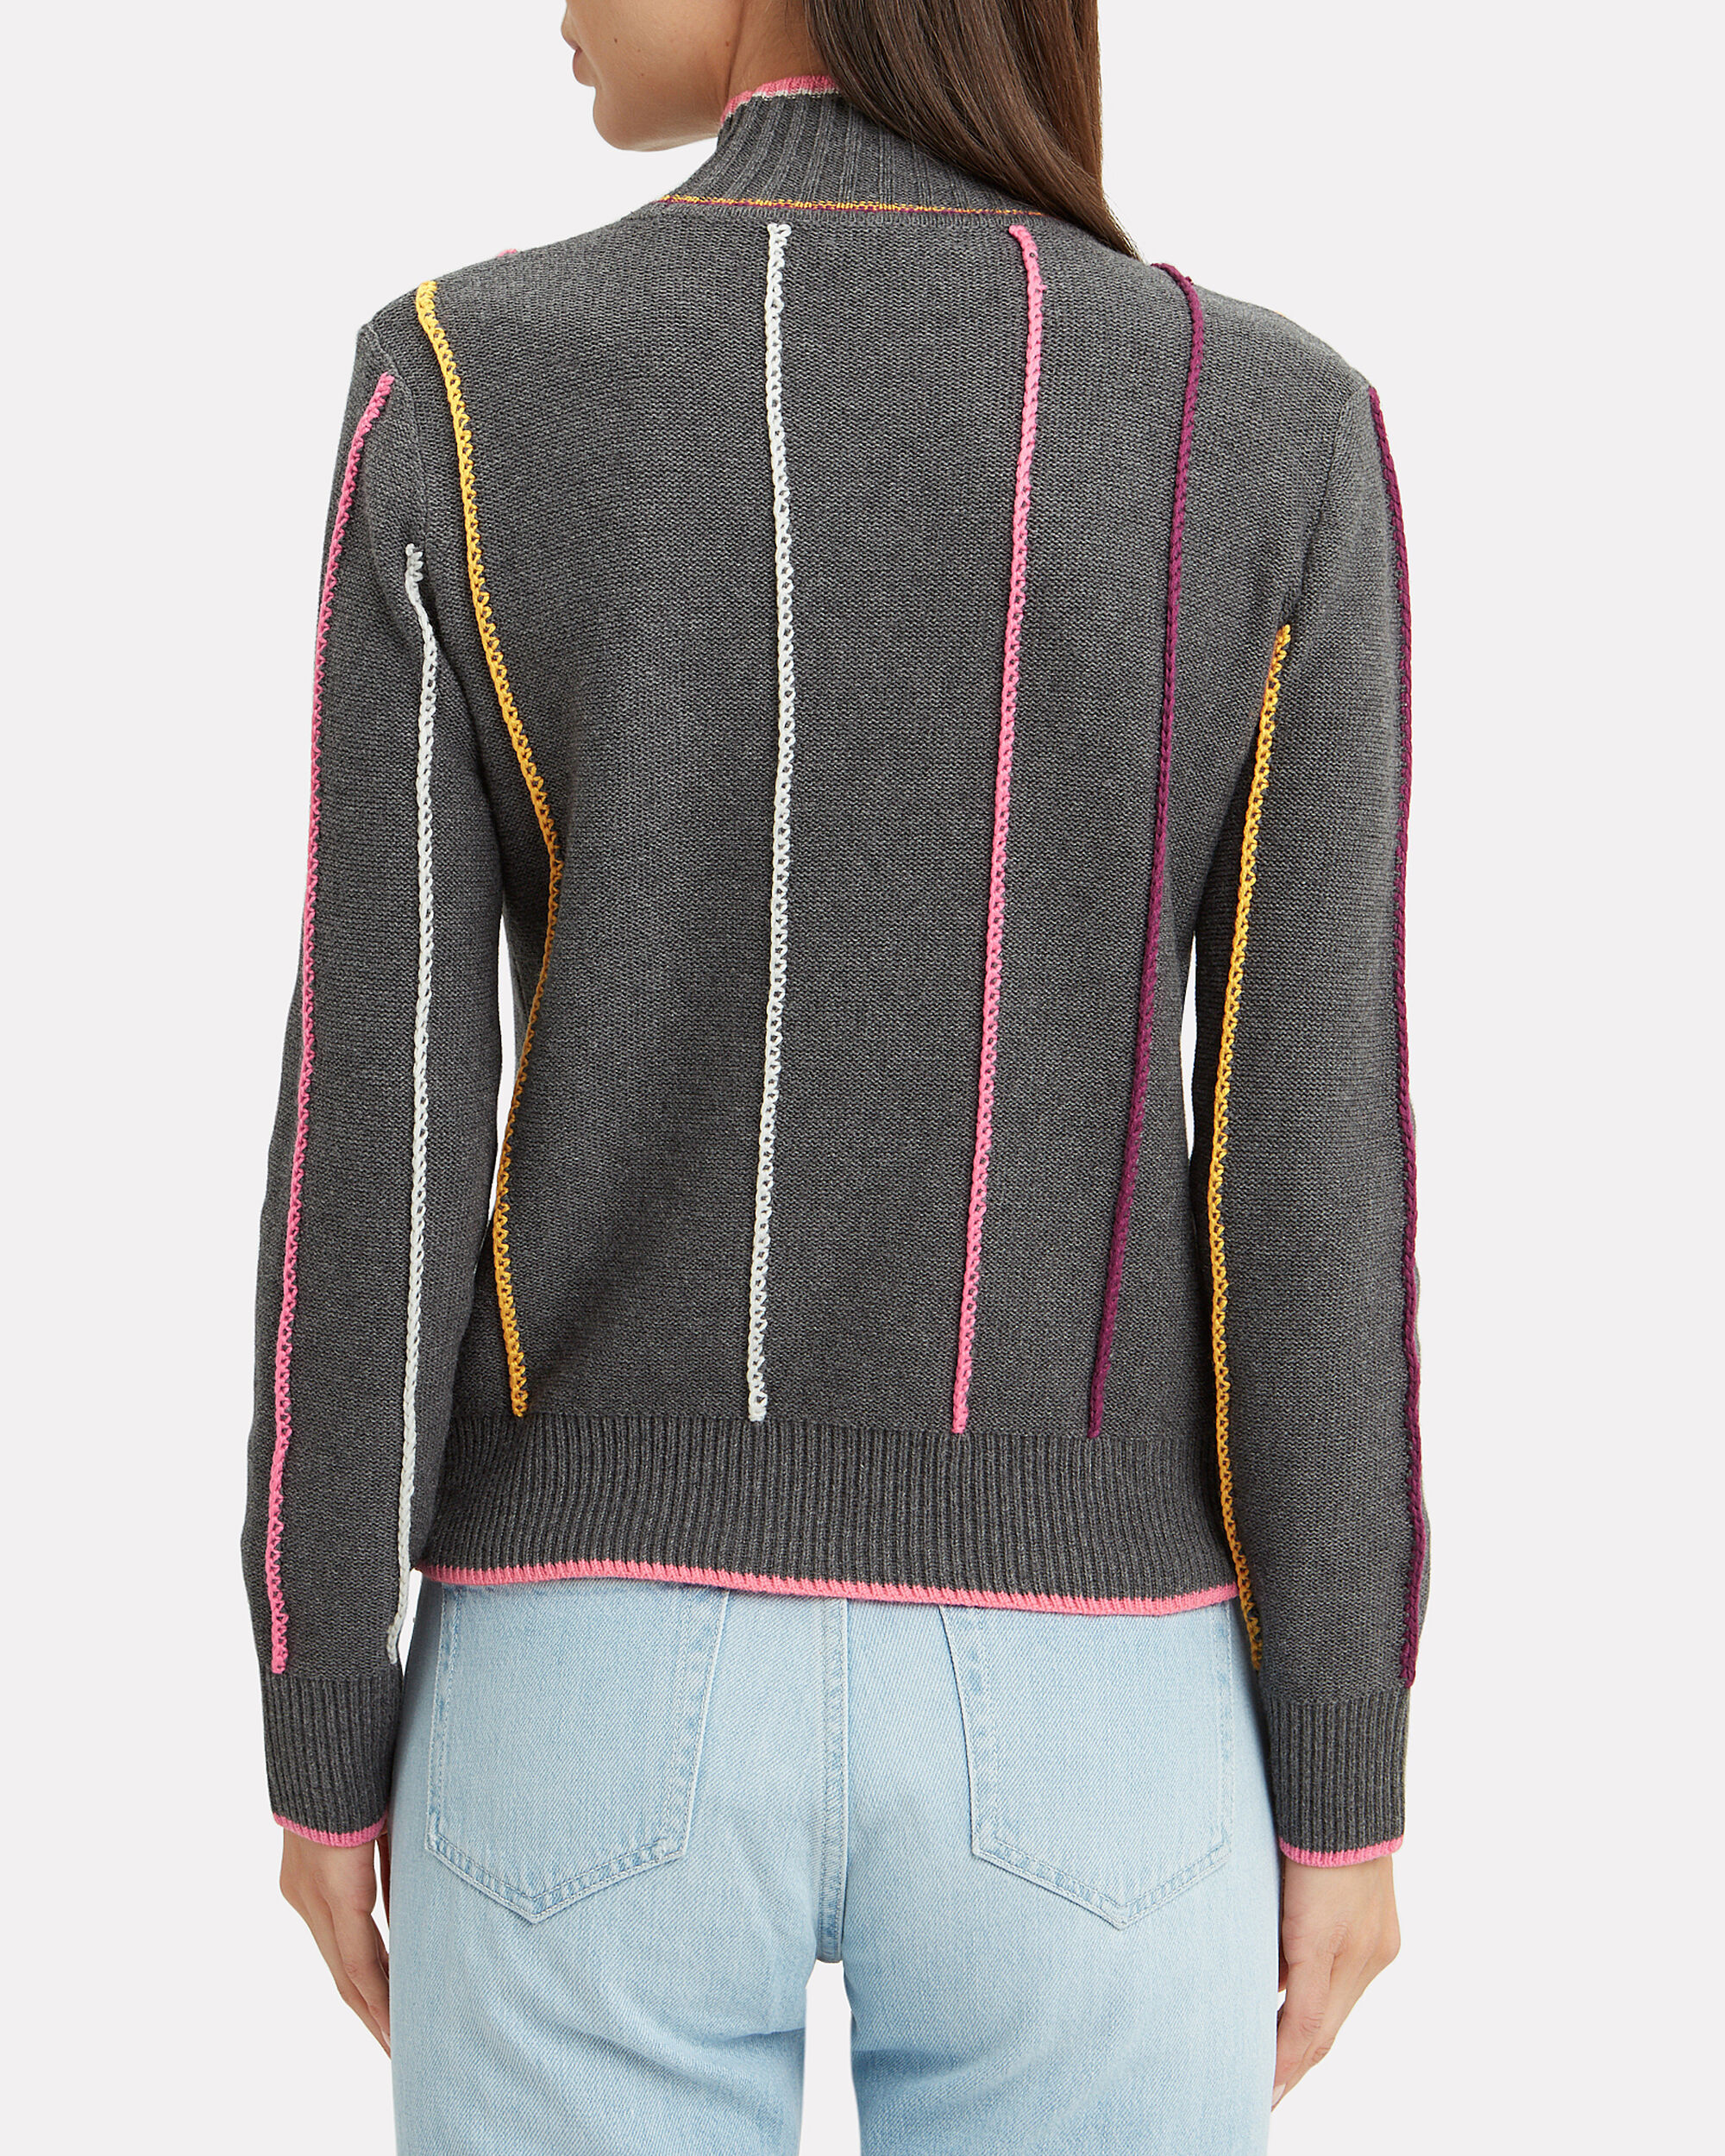 Tom Striped Sweater, GREY/STRIPES, hi-res